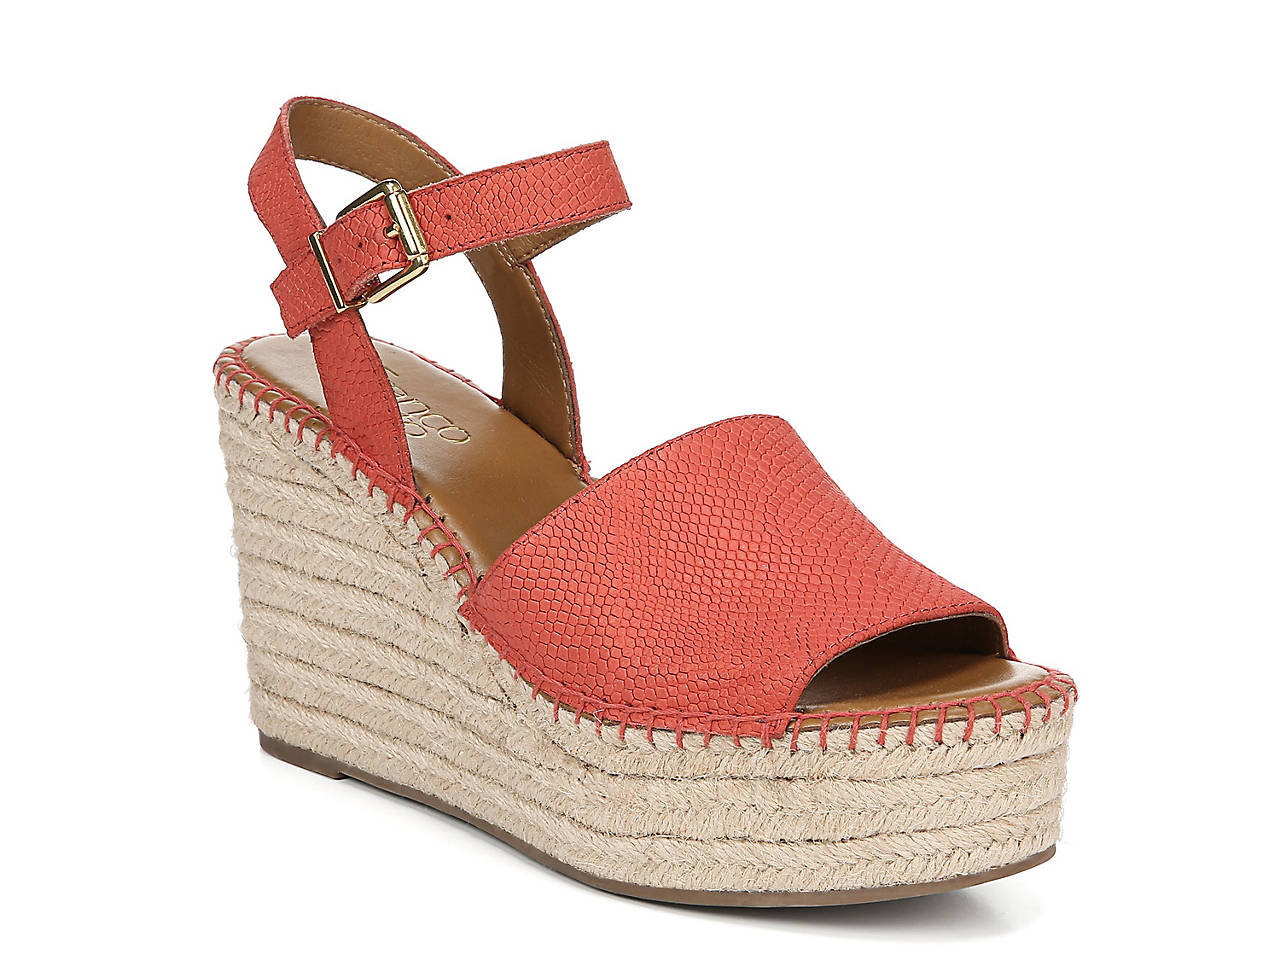 aa2e200a5 Franco Sarto Takara Espadrille Wedge Sandal Women s Shoes